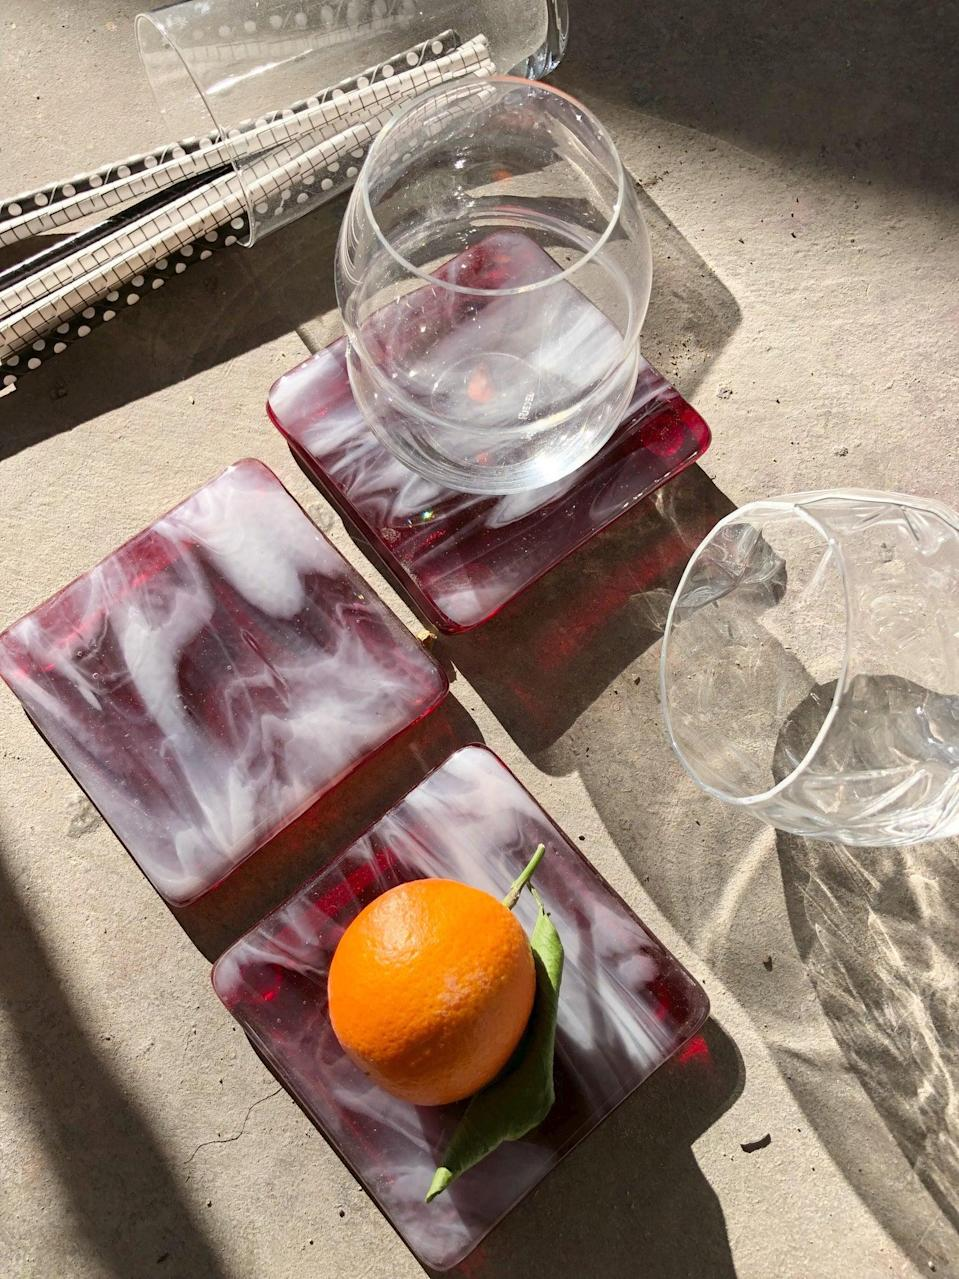 "<h2>Limited Batch Marbled Glass Coaster</h2><br>For the fancy cocktail holder or wine enthusiast in your life. <br><br><em>Shop <strong><a href=""https://www.etsy.com/shop/MadeByRheal"" rel=""nofollow noopener"" target=""_blank"" data-ylk=""slk:MadeByRheal"" class=""link rapid-noclick-resp"">MadeByRheal</a></strong></em><br><br><strong>MadeByRheal</strong> Limited Batch Marbled Glass Coaster, $, available at <a href=""https://go.skimresources.com/?id=30283X879131&url=https%3A%2F%2Fwww.etsy.com%2Flisting%2F592959899%2Flimited-batch-marbled-glass-coaster-set"" rel=""nofollow noopener"" target=""_blank"" data-ylk=""slk:Etsy"" class=""link rapid-noclick-resp"">Etsy</a>"